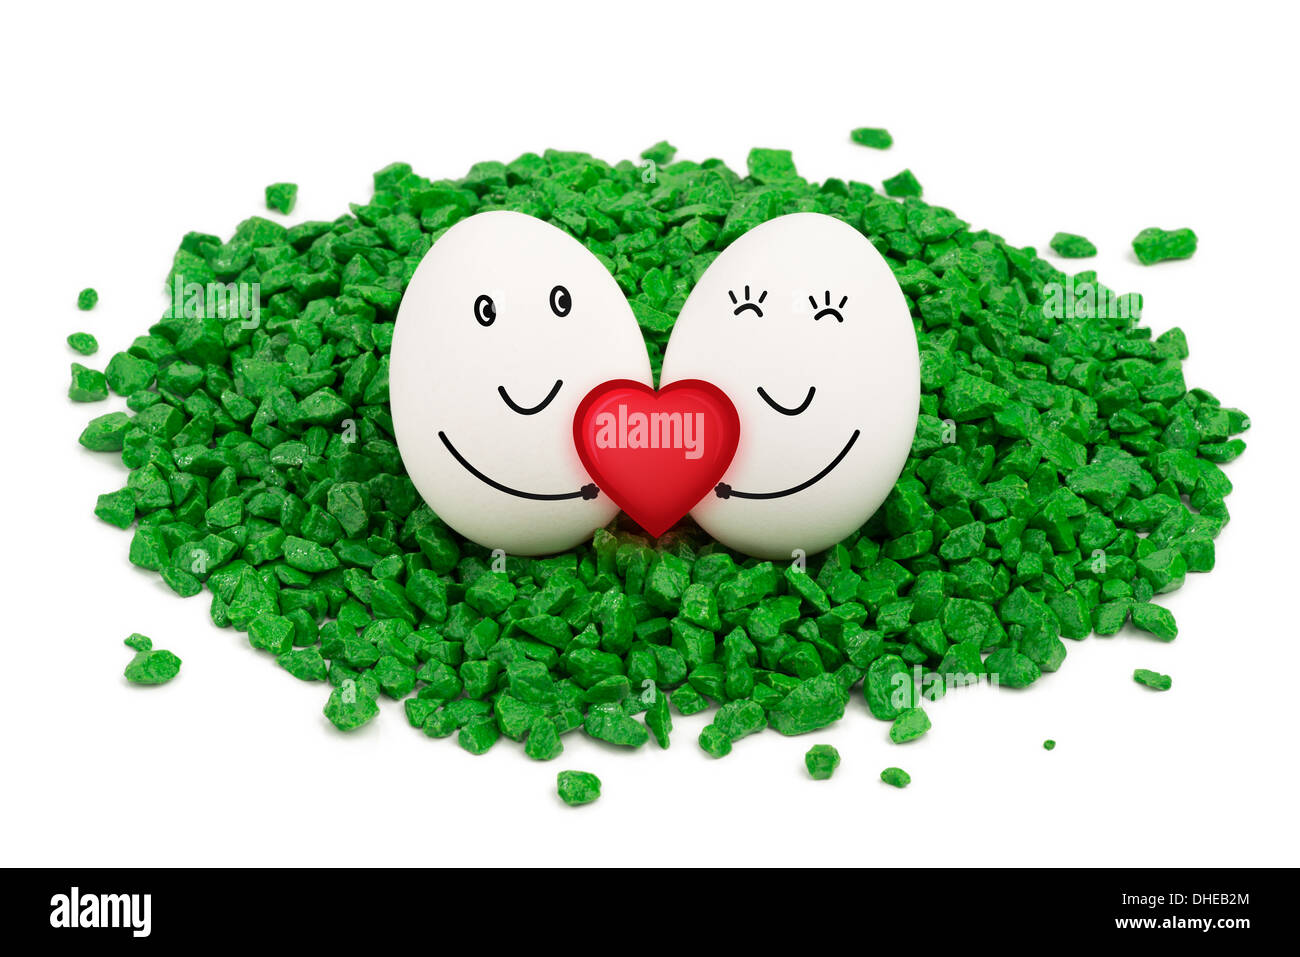 Two eggs lie on a green stones, are smiling and holding a red heart. - Stock Image